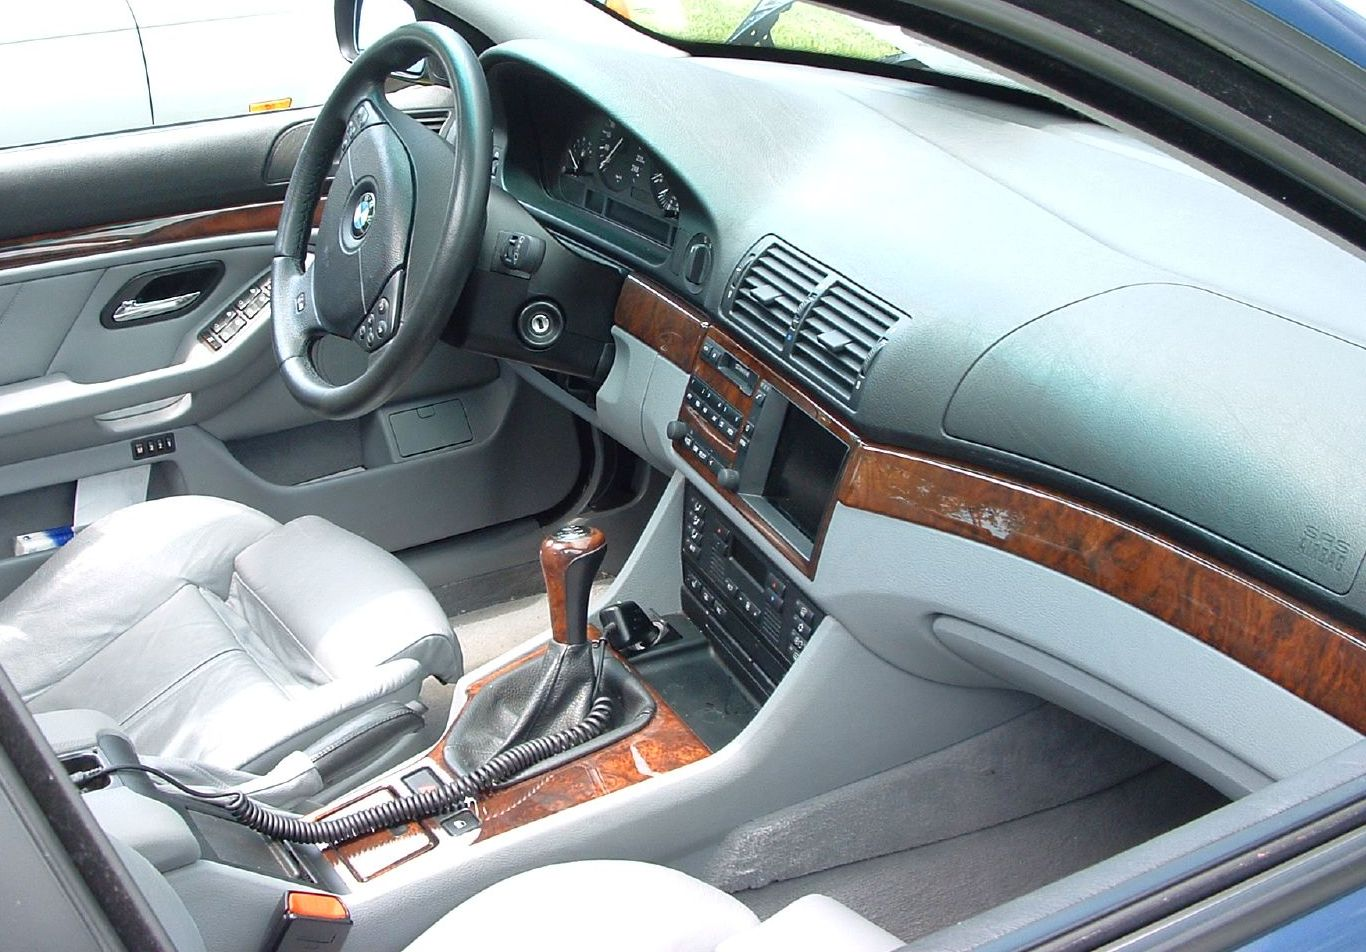 Bmw Automobiles Bmw X5 2001 Interior